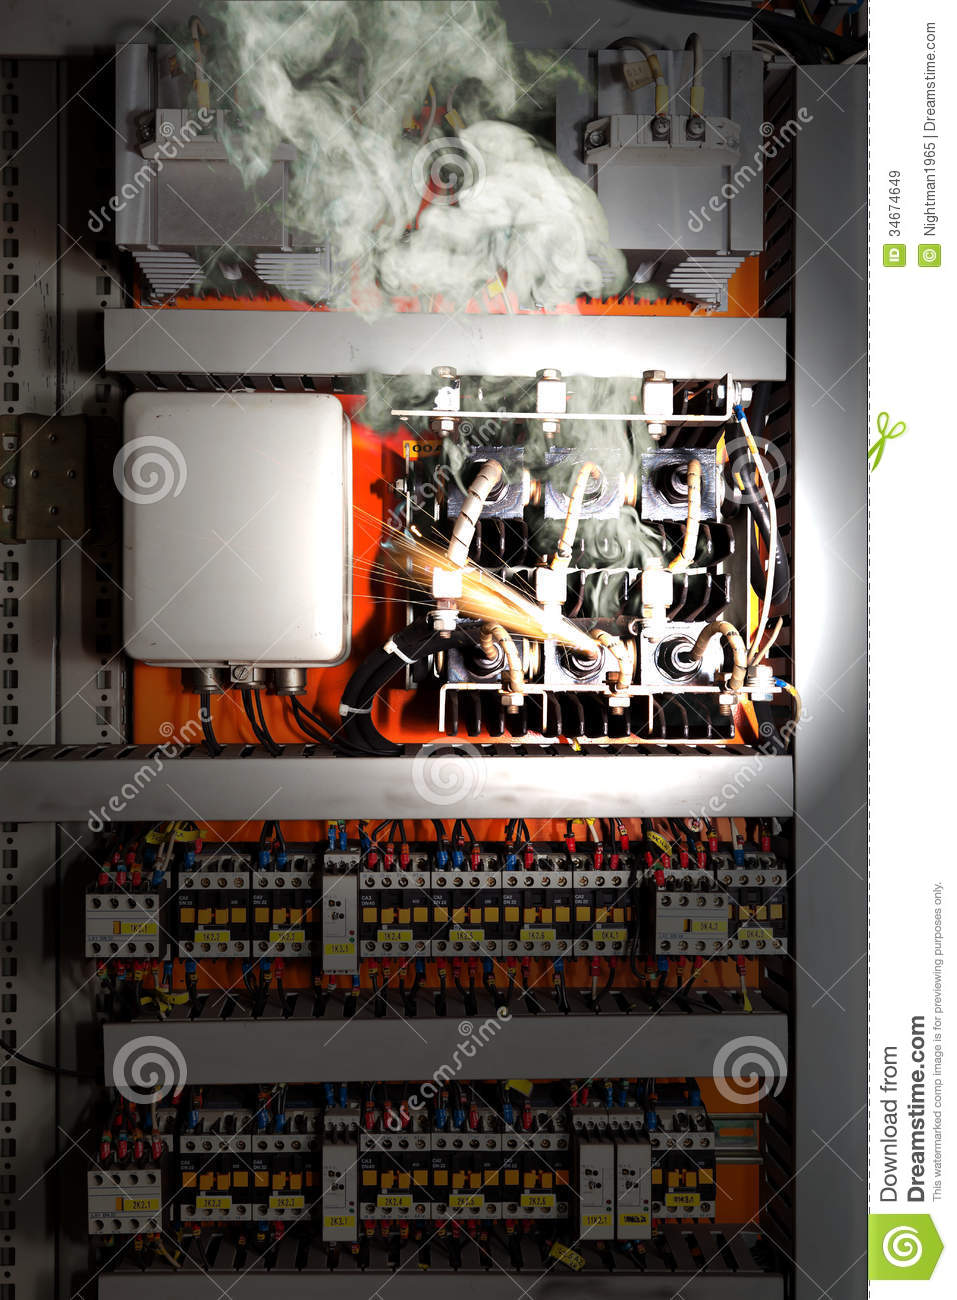 Electric Shock Stock Image  Image Of Construction  Control